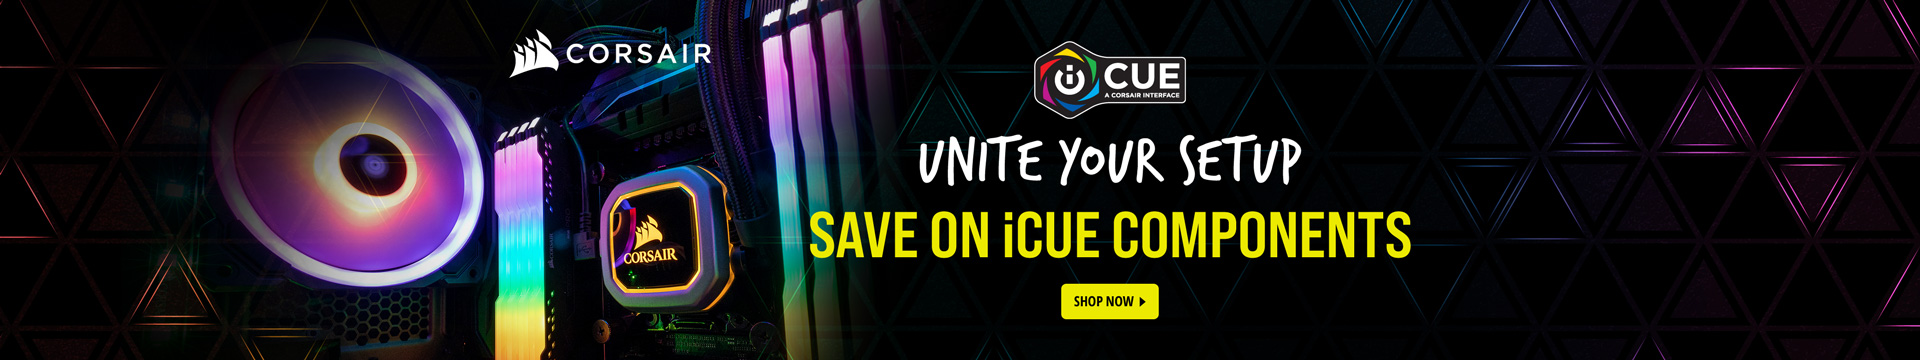 UNITE YOUR SETUP SAVE ON iCUE COMPONENTS